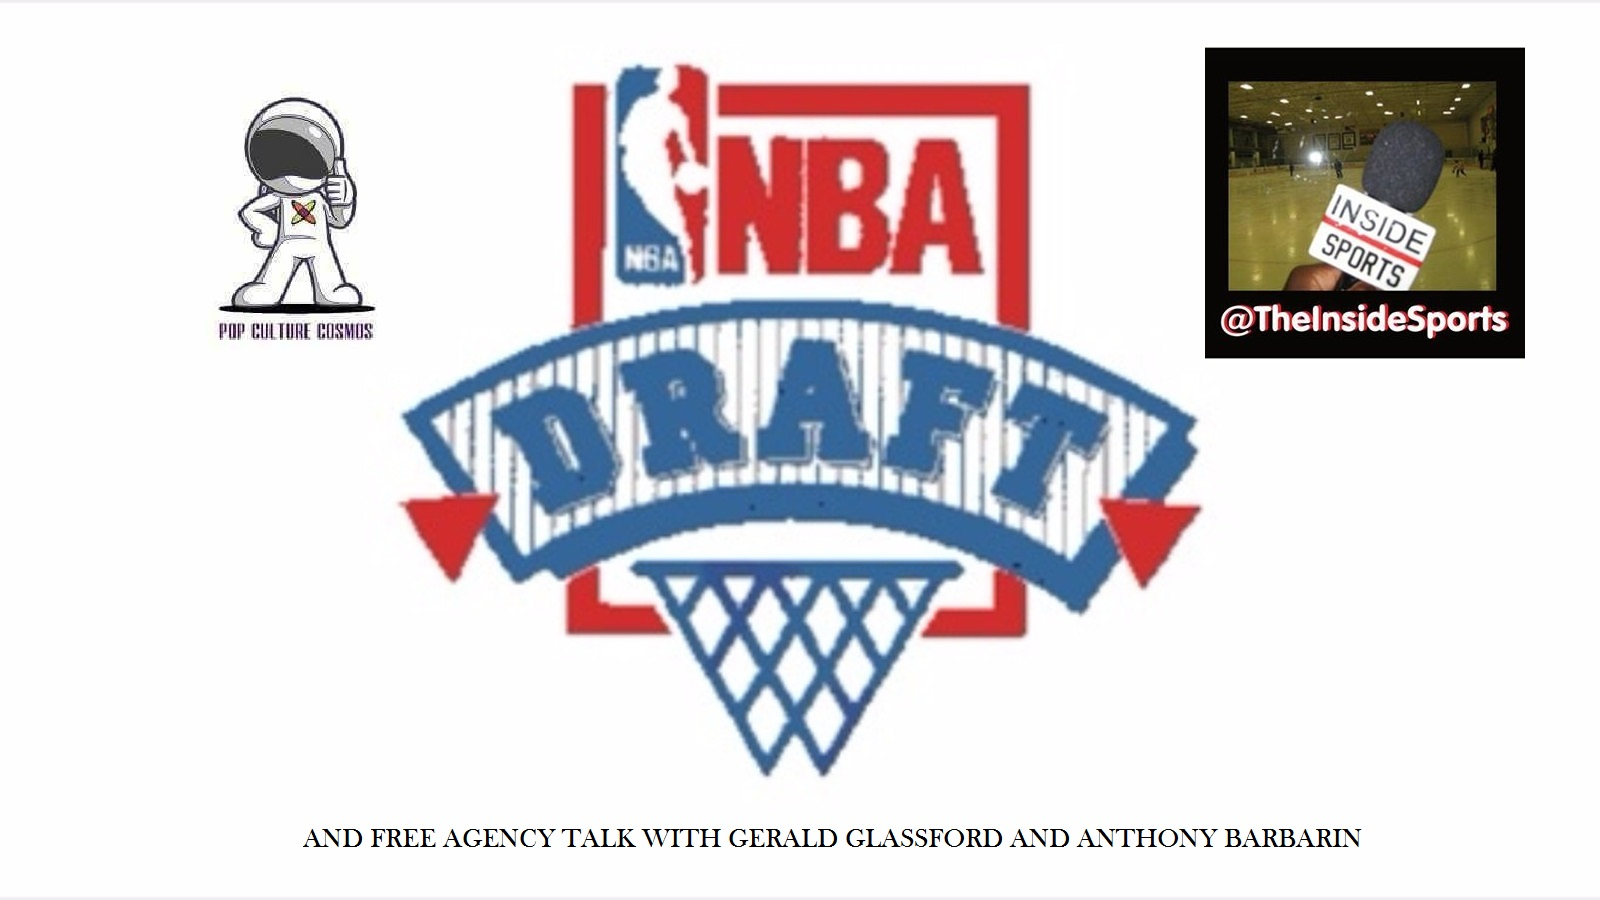 PCC Presents- Your last minute 2018 NBA Mock Draft and Free Agency